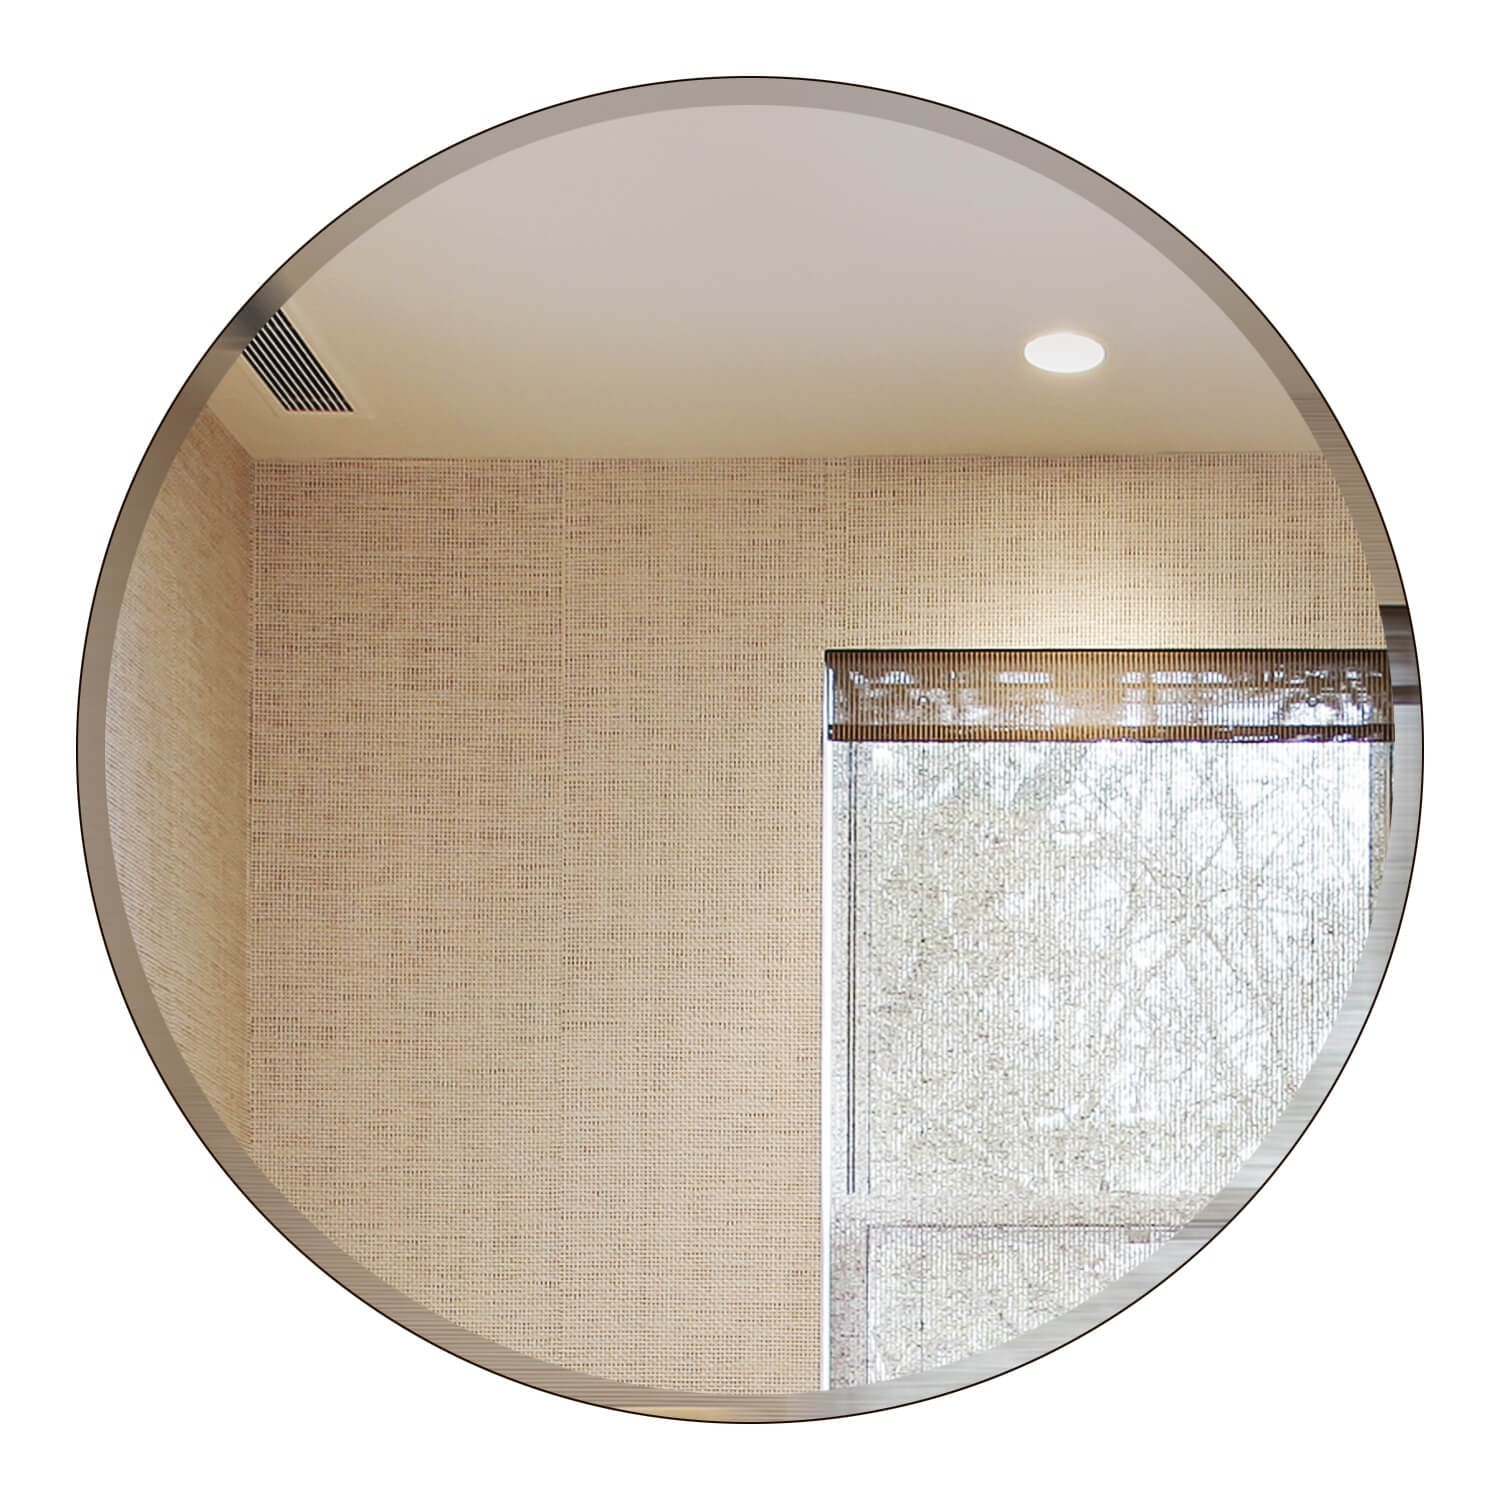 Frameless Round Wall Mirrors Buy Large Round Bathroom Mirror On Within Round Mirrors For Sale (Image 3 of 15)